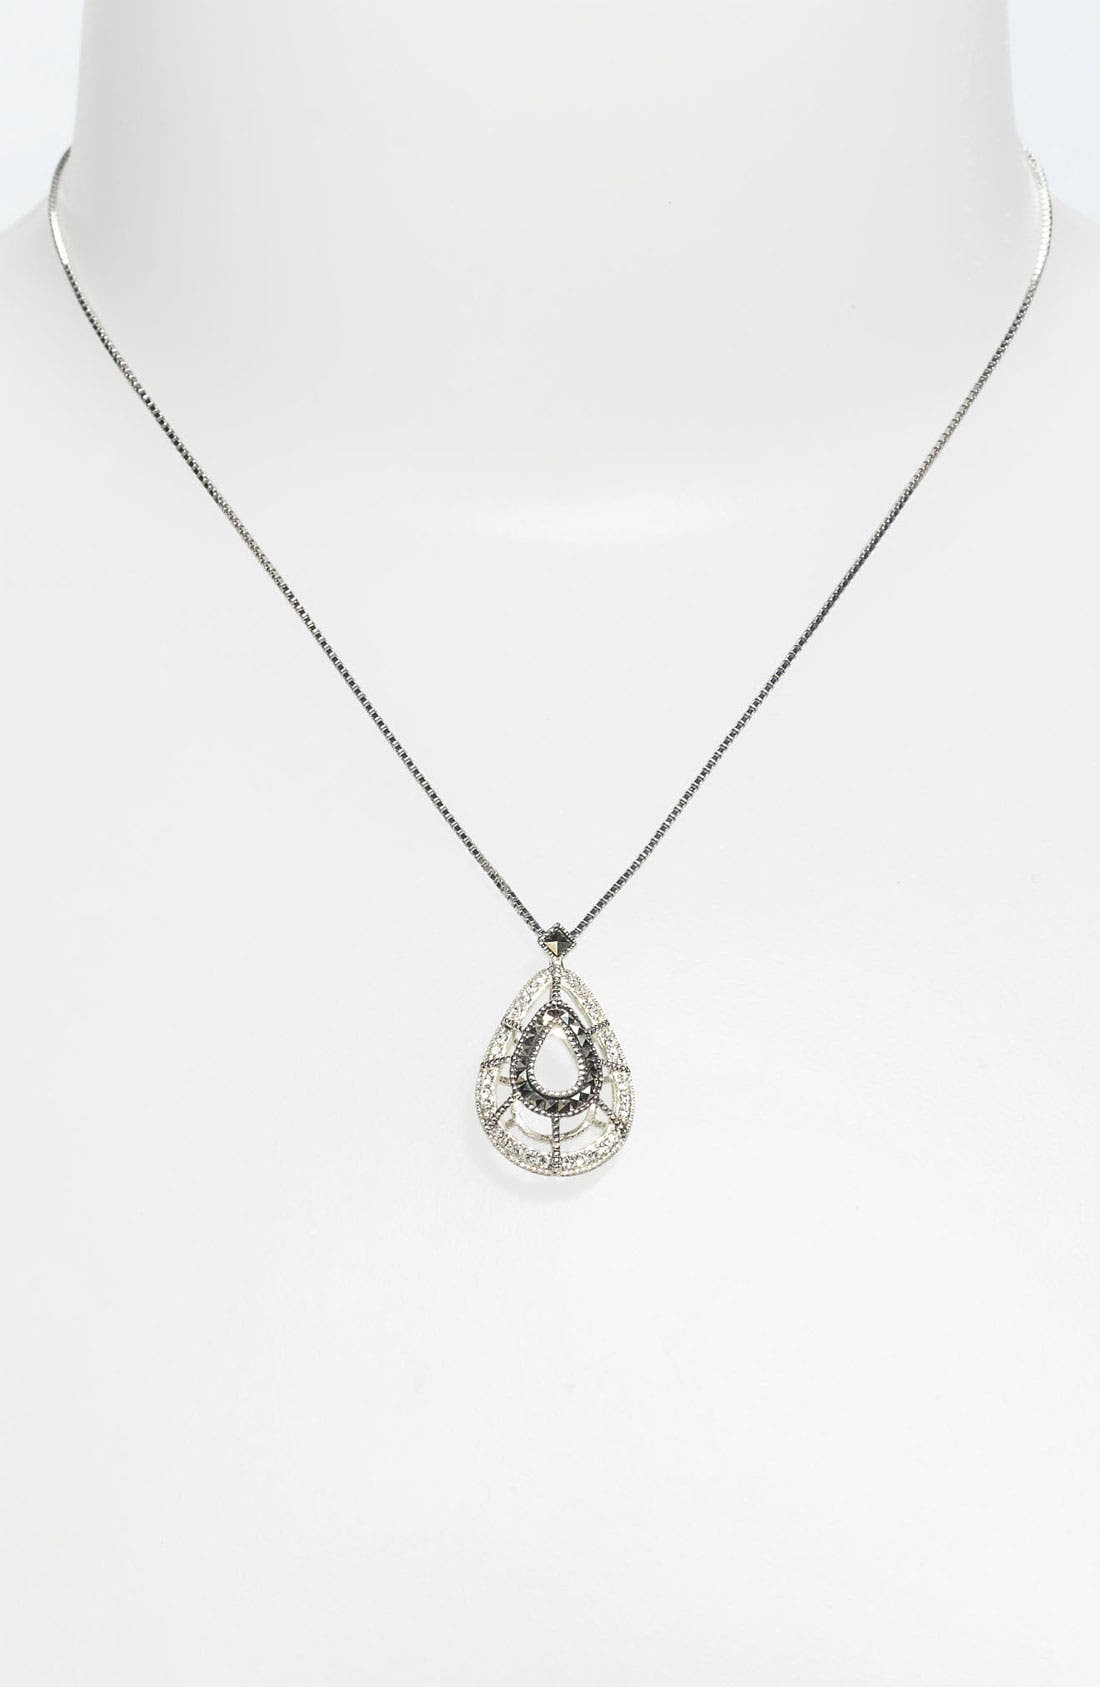 Main Image - Judith Jack 'Caged In' Teardrop Pendant Necklace